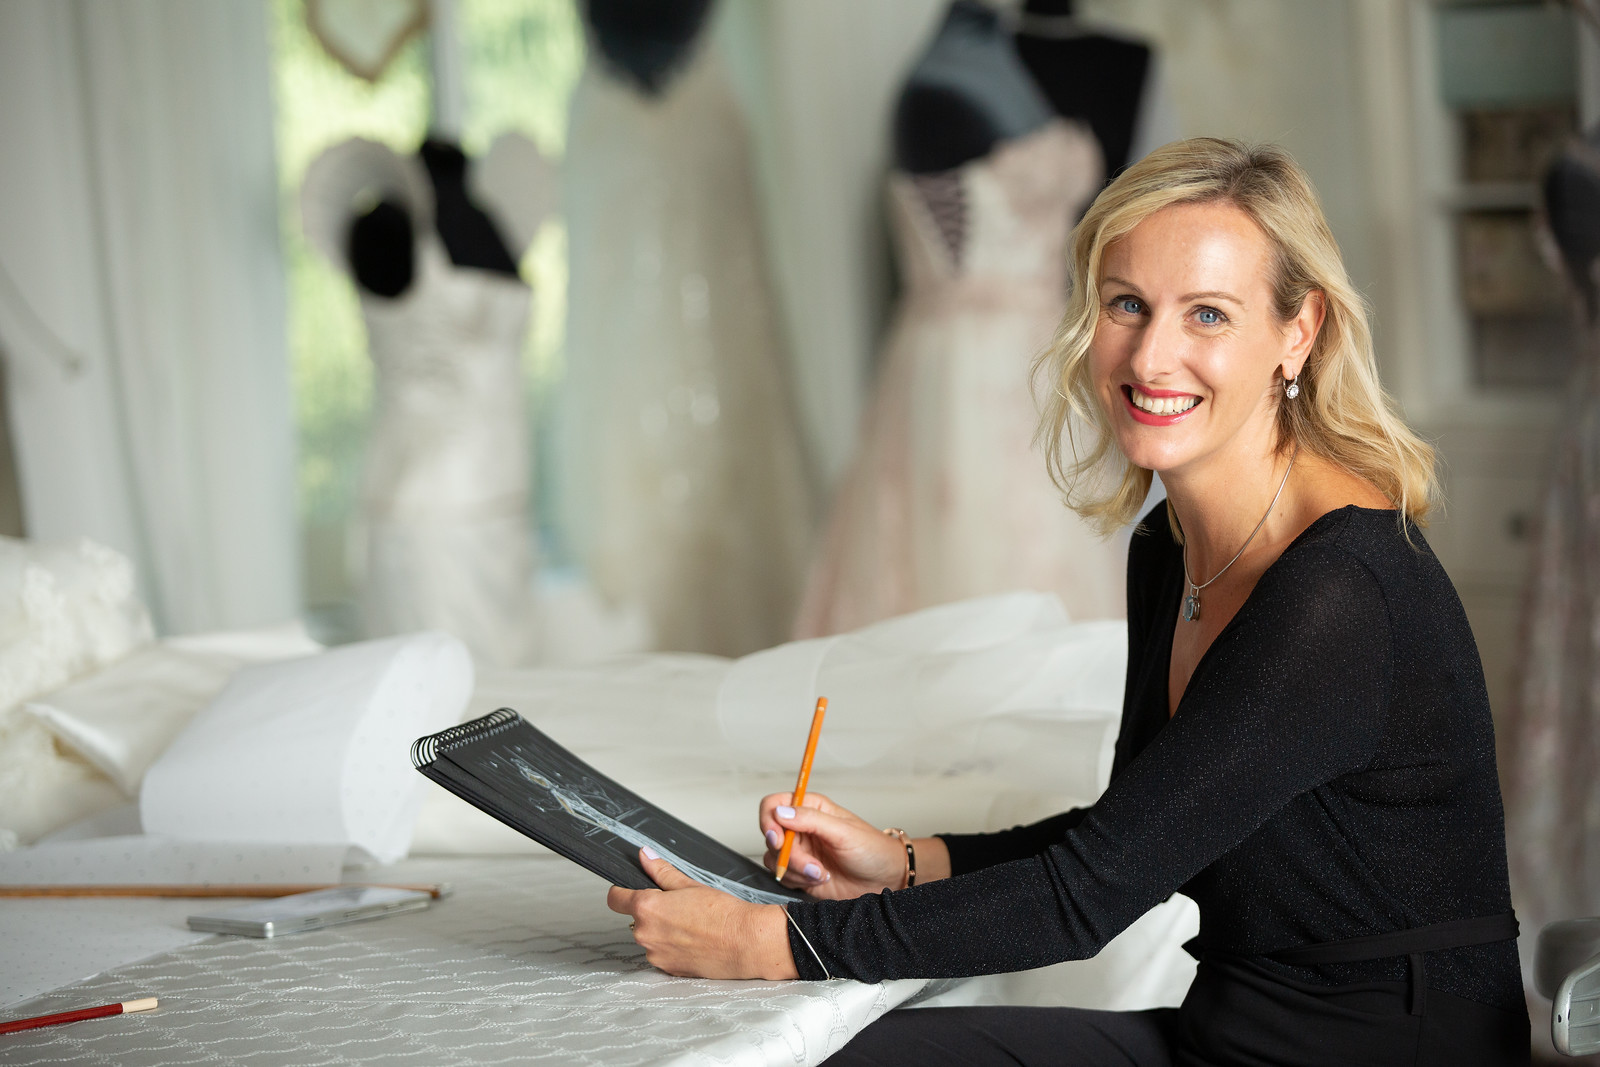 About the Designer - Sian Hughes Cooke